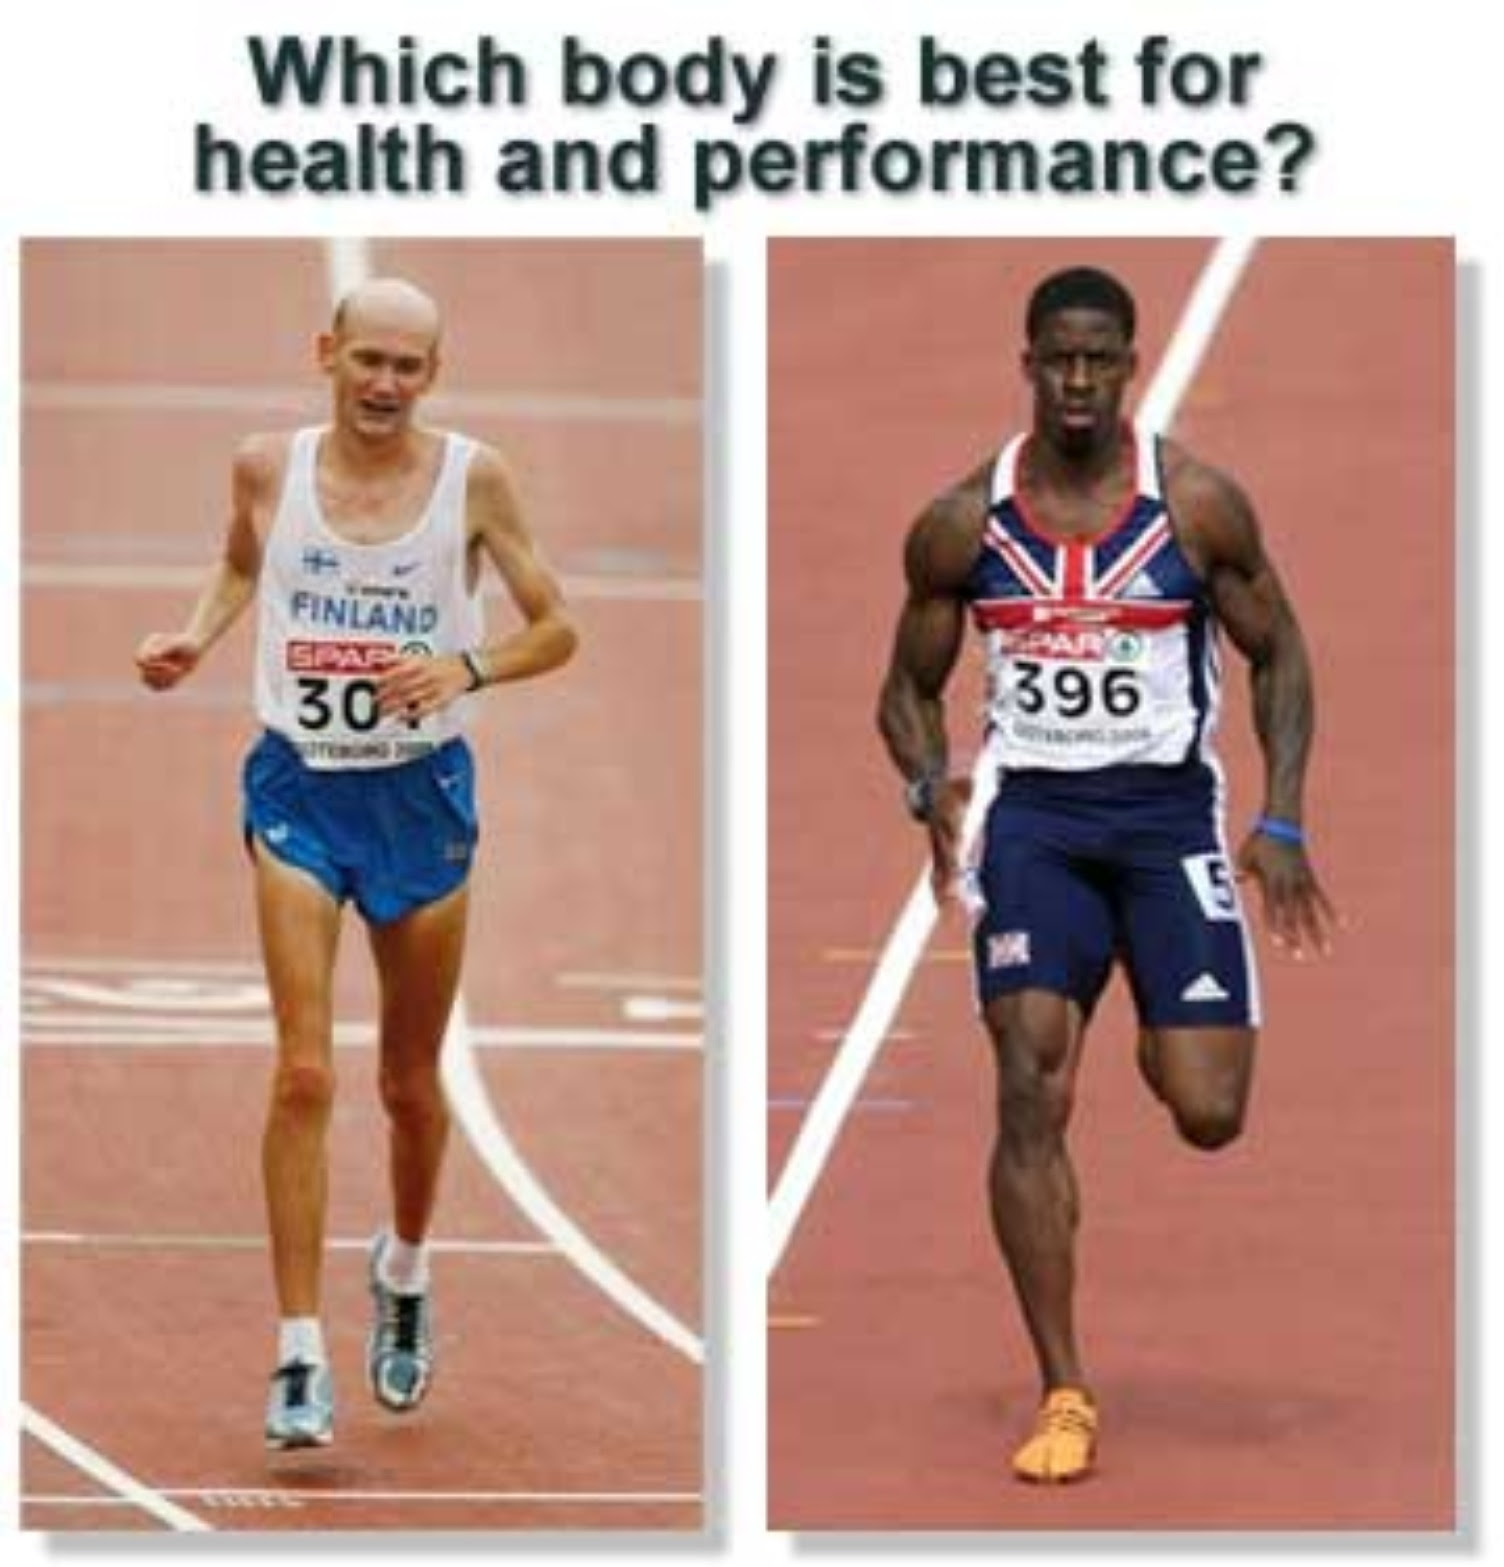 body fat percentage professional athlete